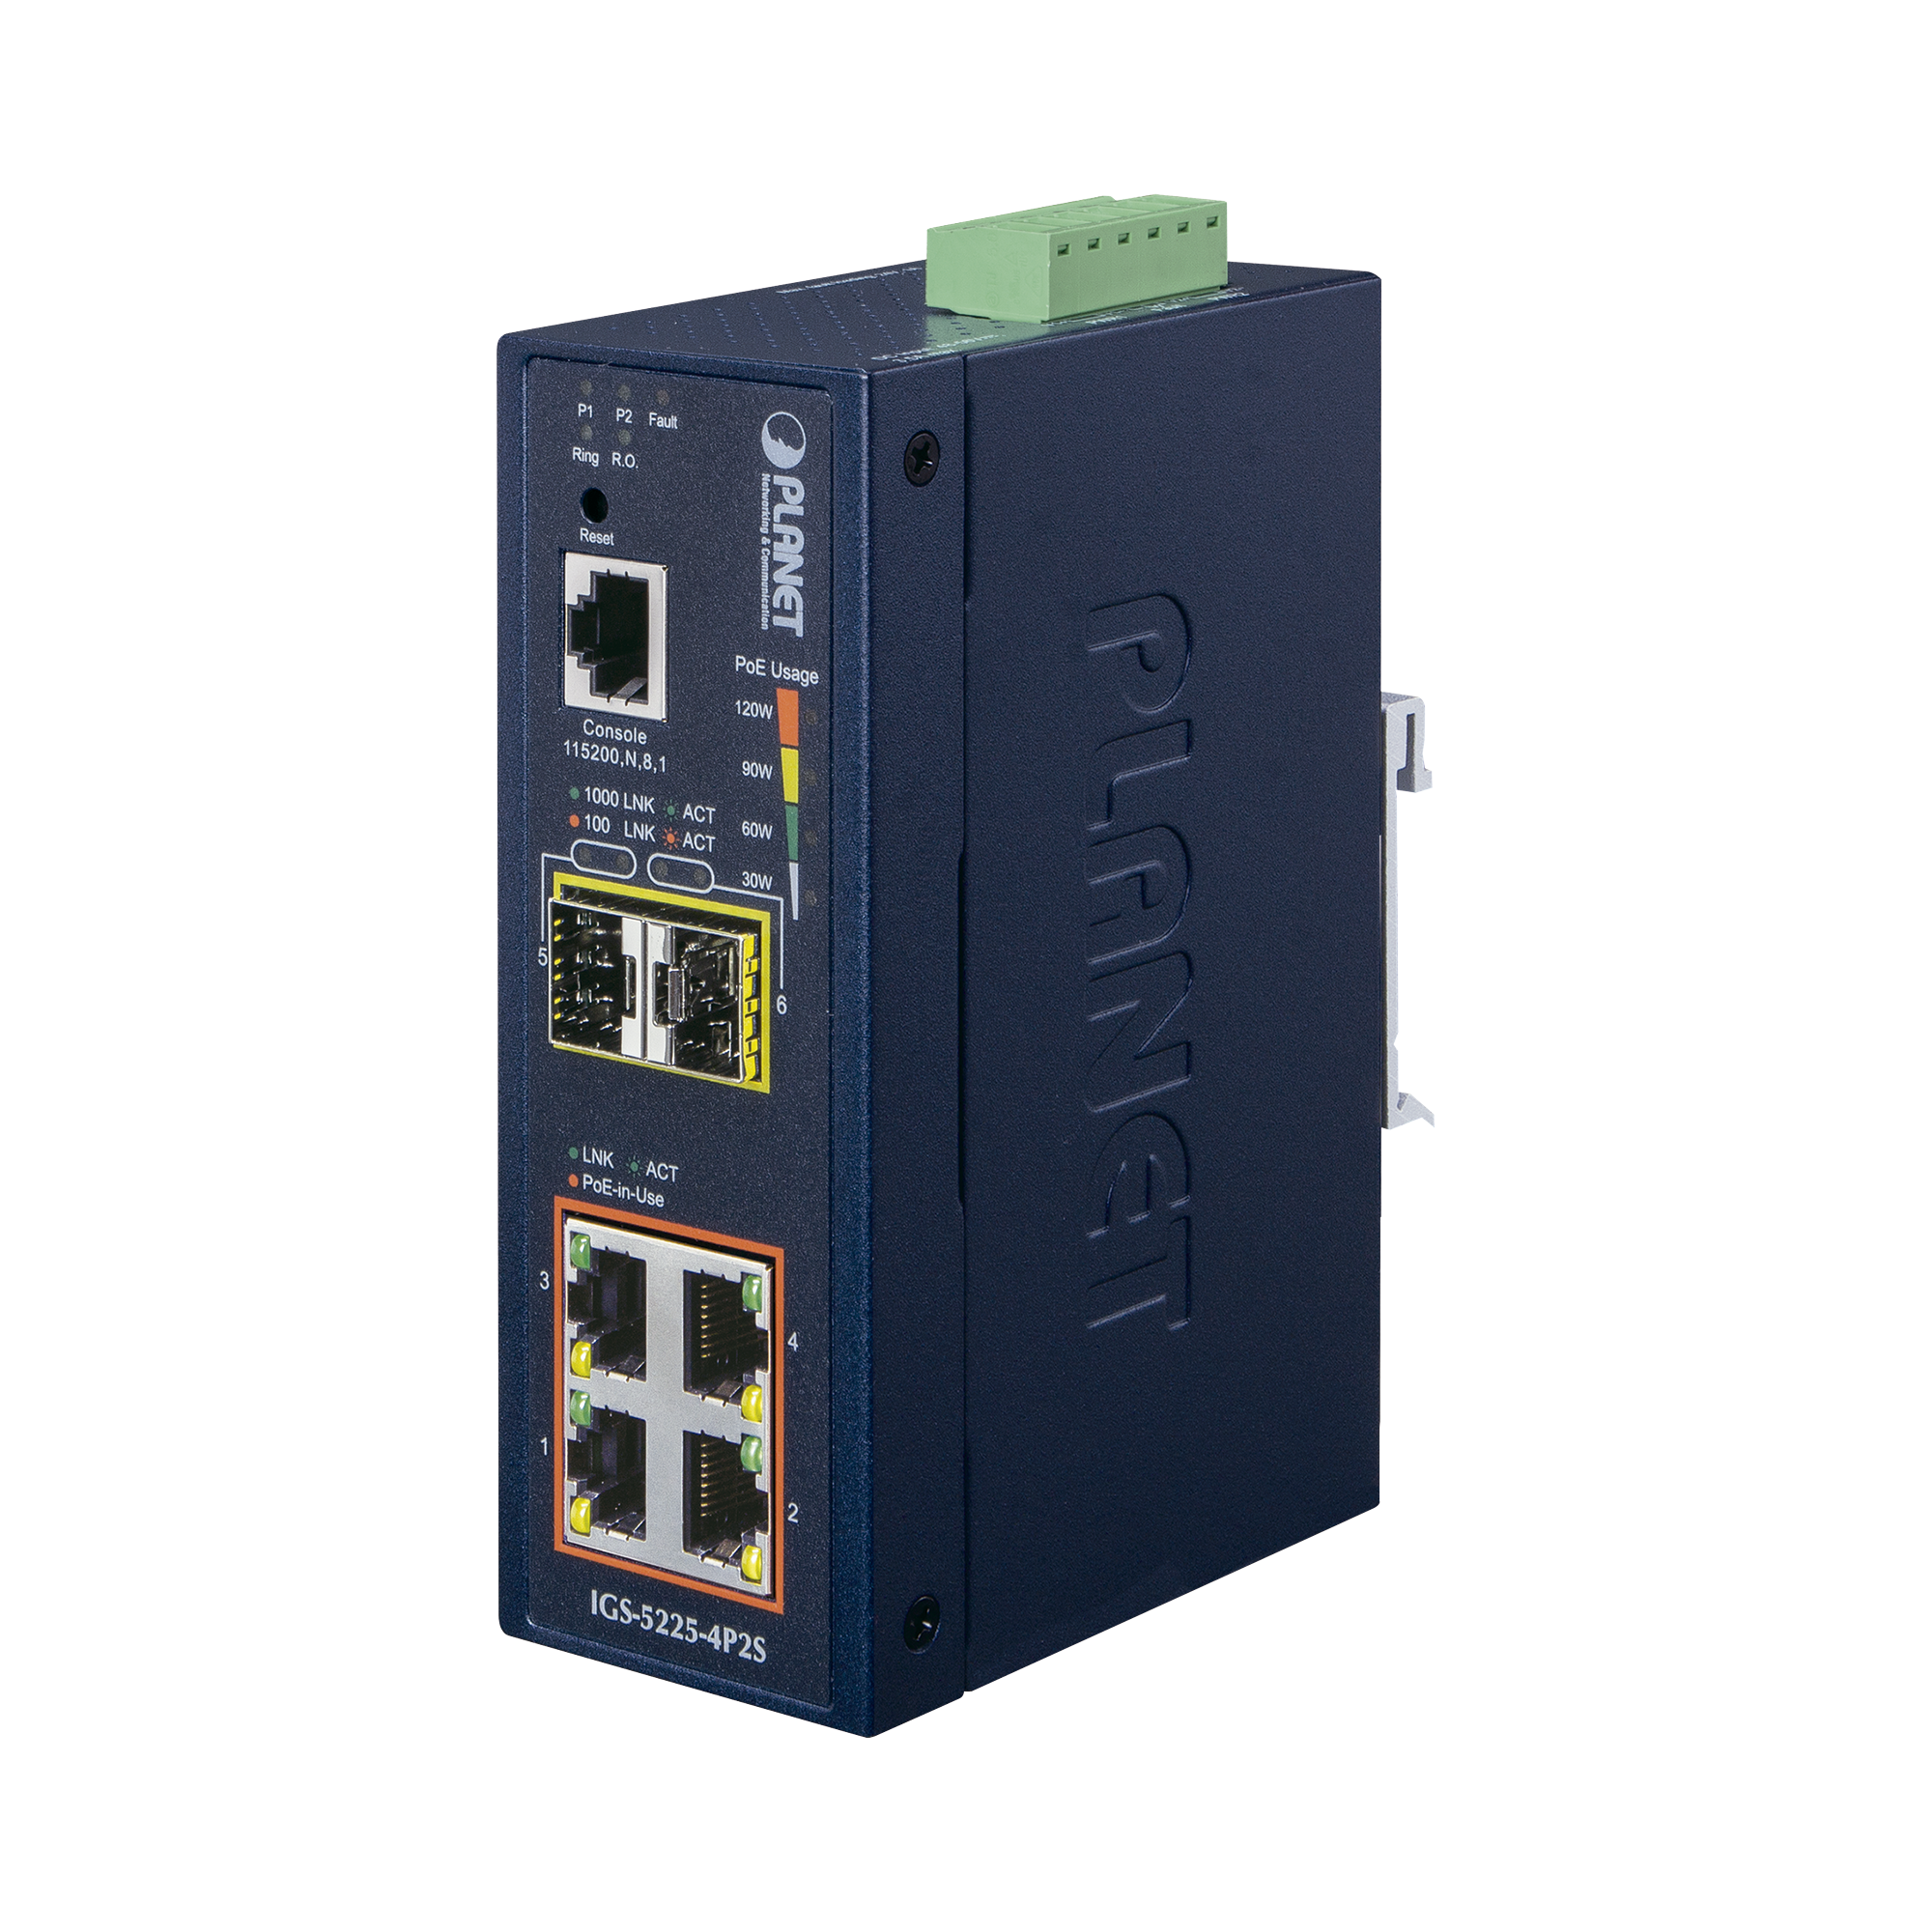 Switch Administrable industrial L2+ de 4 puertos 10/100/1000T C/PoE 802.3at + 2 puertos SFP 100/1000X